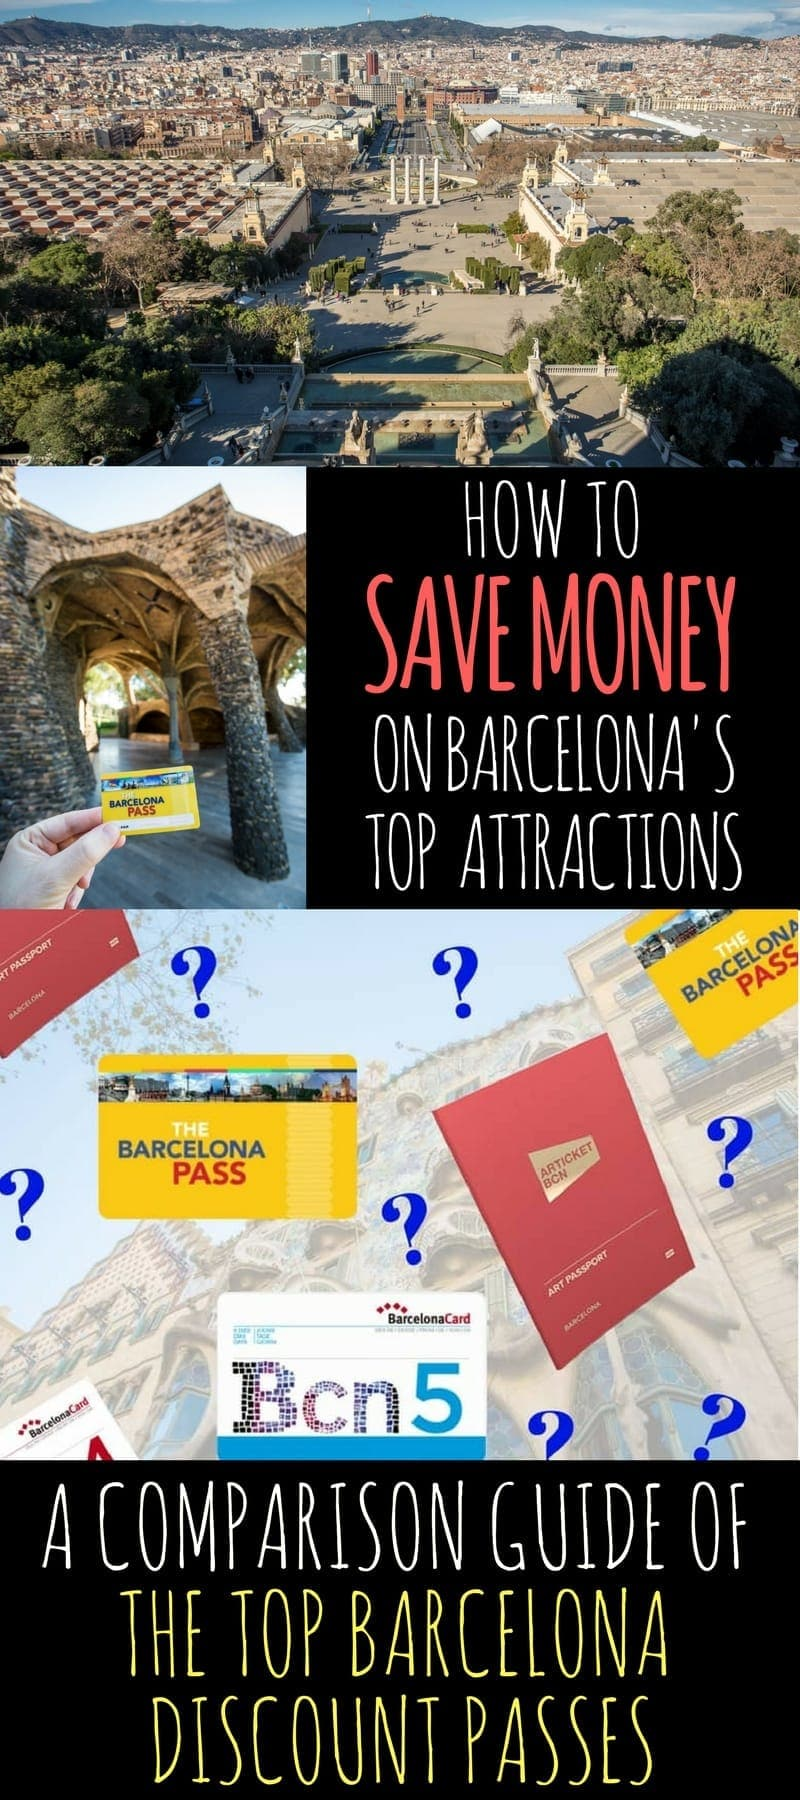 Save money in Barcelona with discount passes. This post compares three of the most popular passes: Barcelona Pass versus the Barcelona Card versus the Barcelona Museum Pass (aka Barcelona Articket). Find out which one is best for you and save money in Barcelona! Comparison chart included: